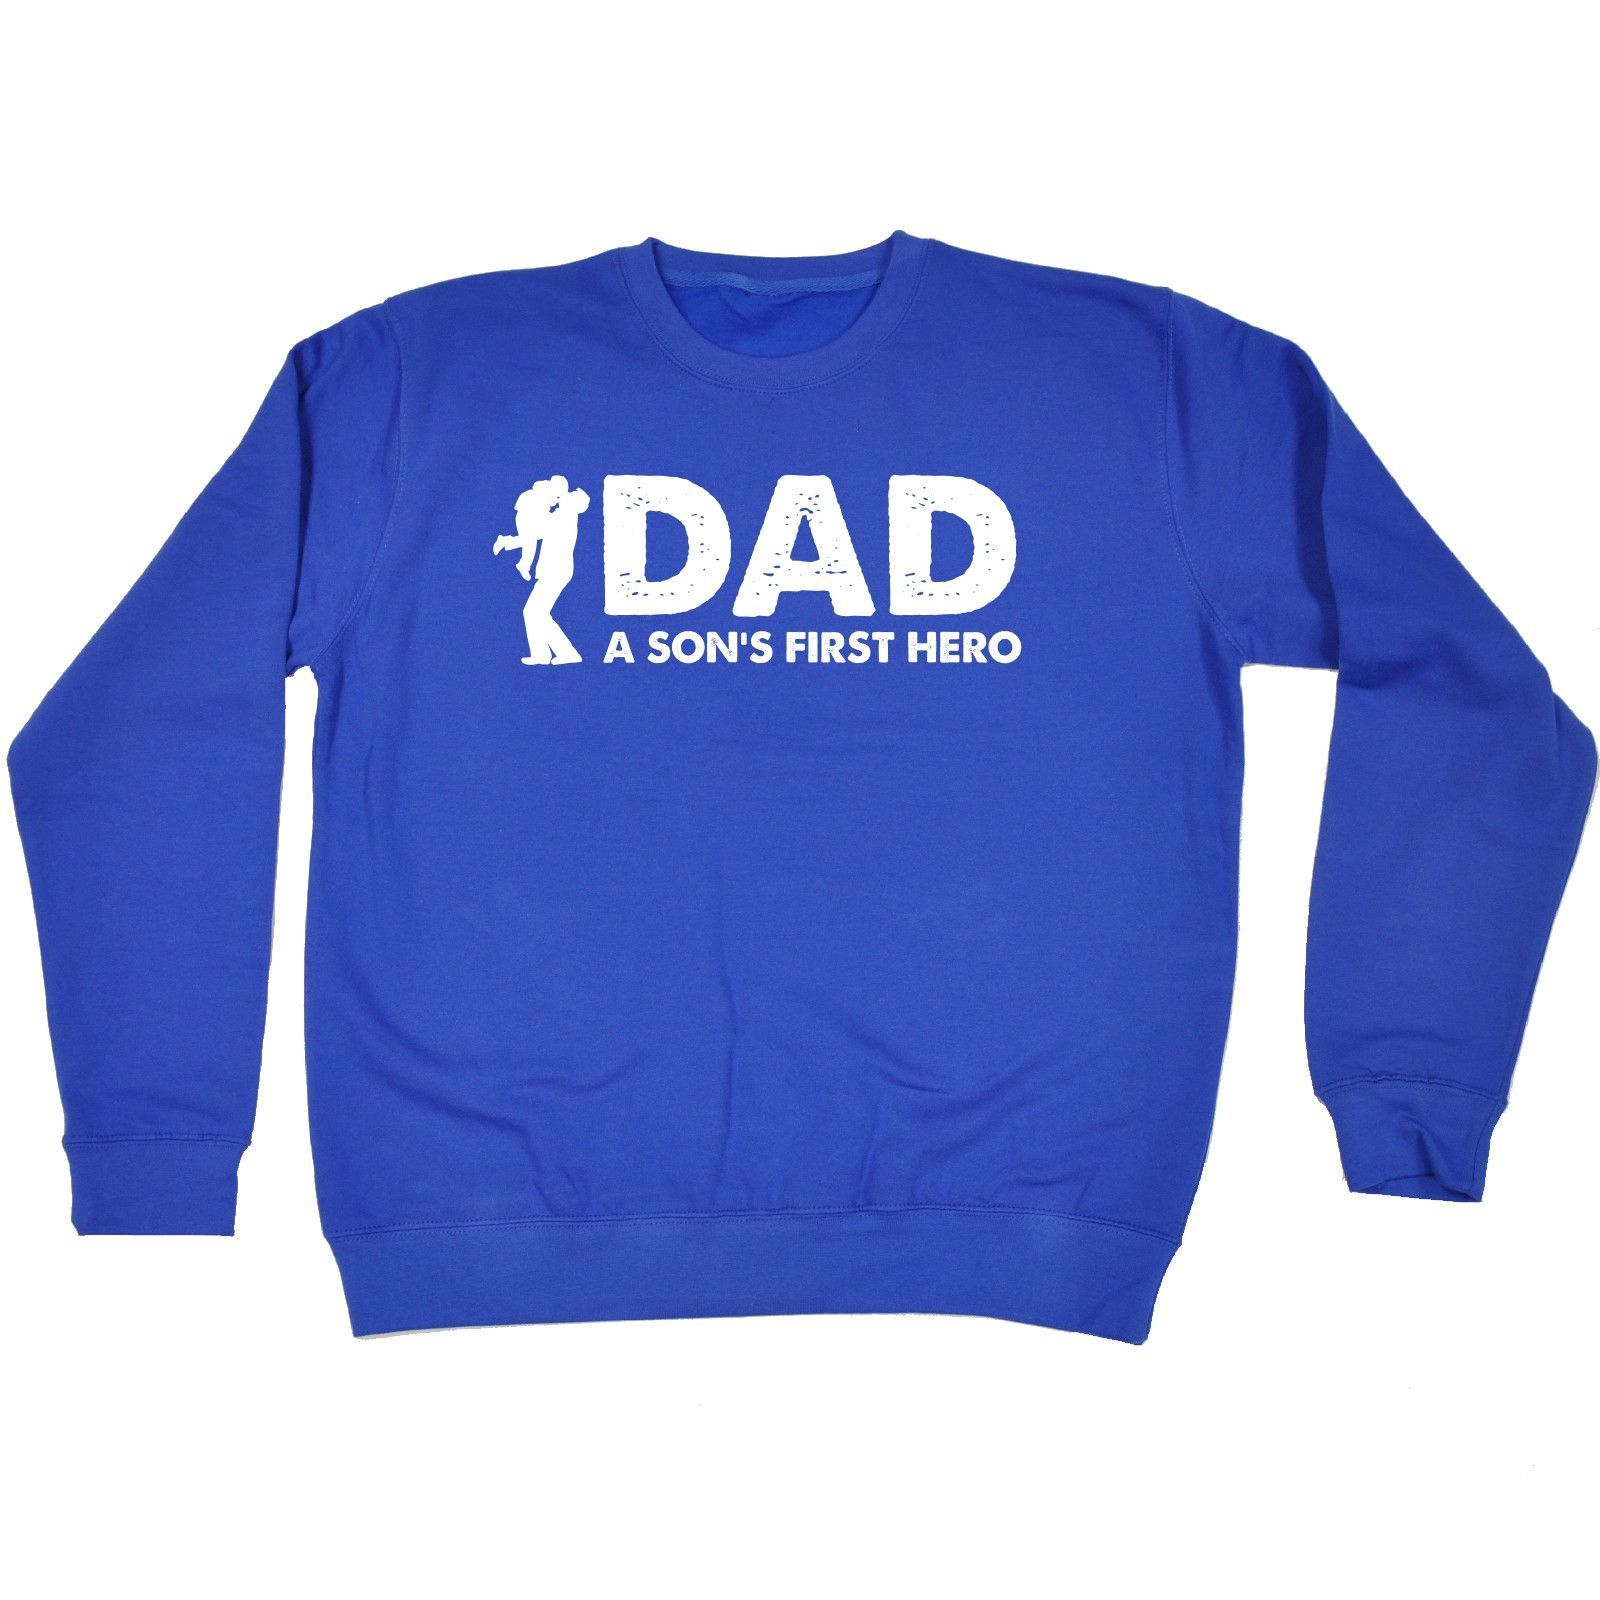 123t USA Dad A Son's First Hero Funny Sweatshirt